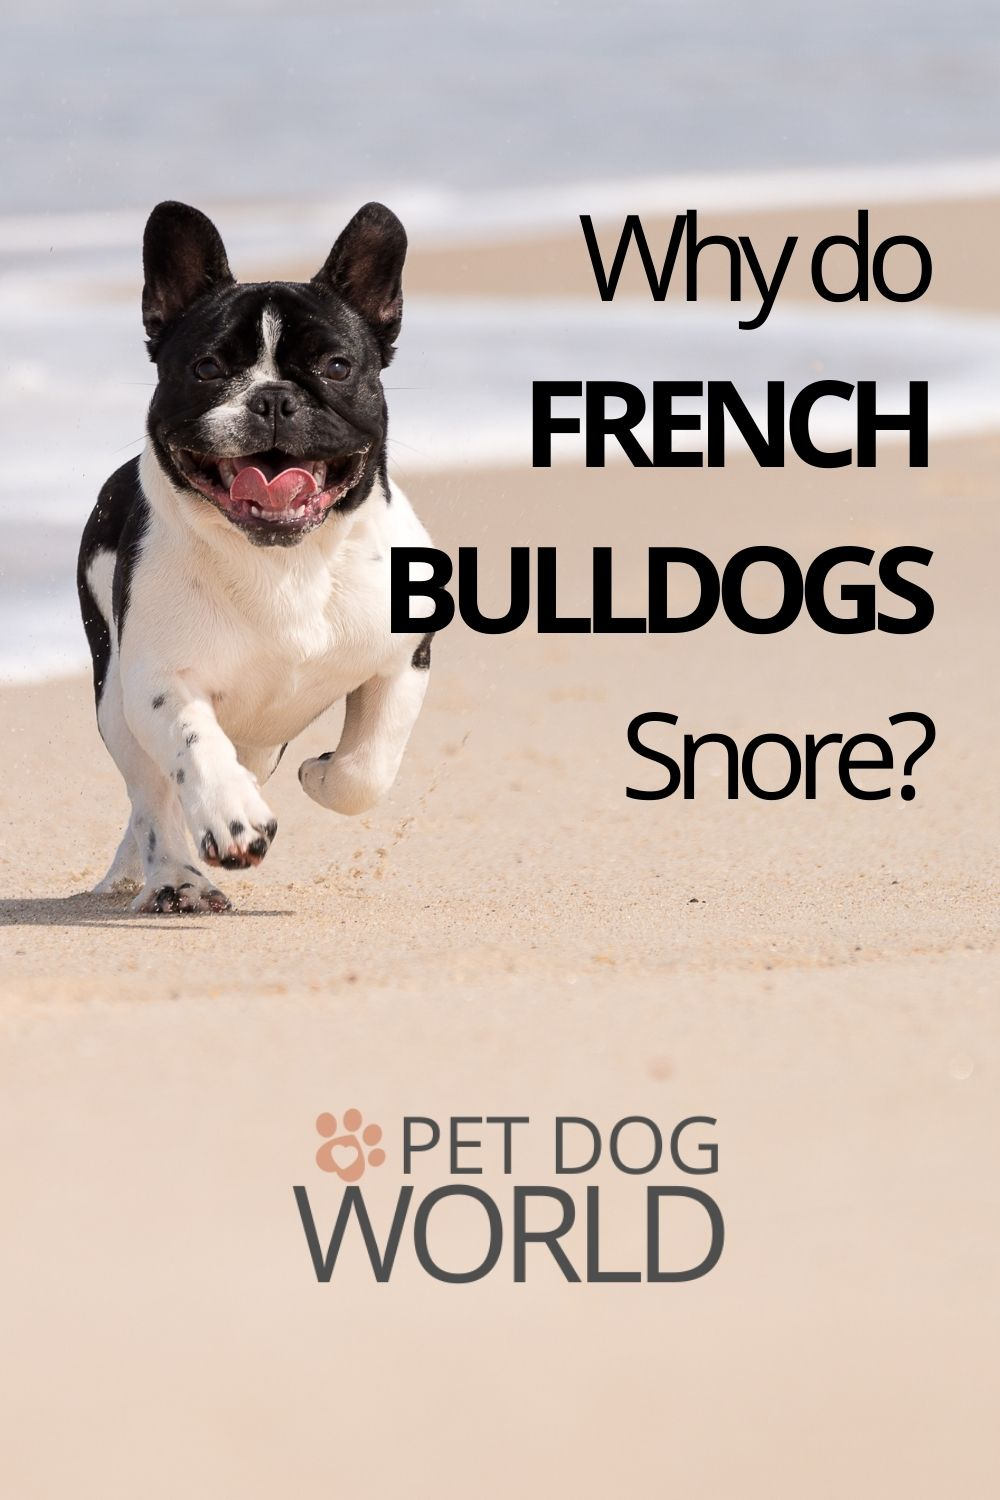 This post aims to help you understand why French bulldogs snore, when it becomes a problem, and what you can do to remedy it.